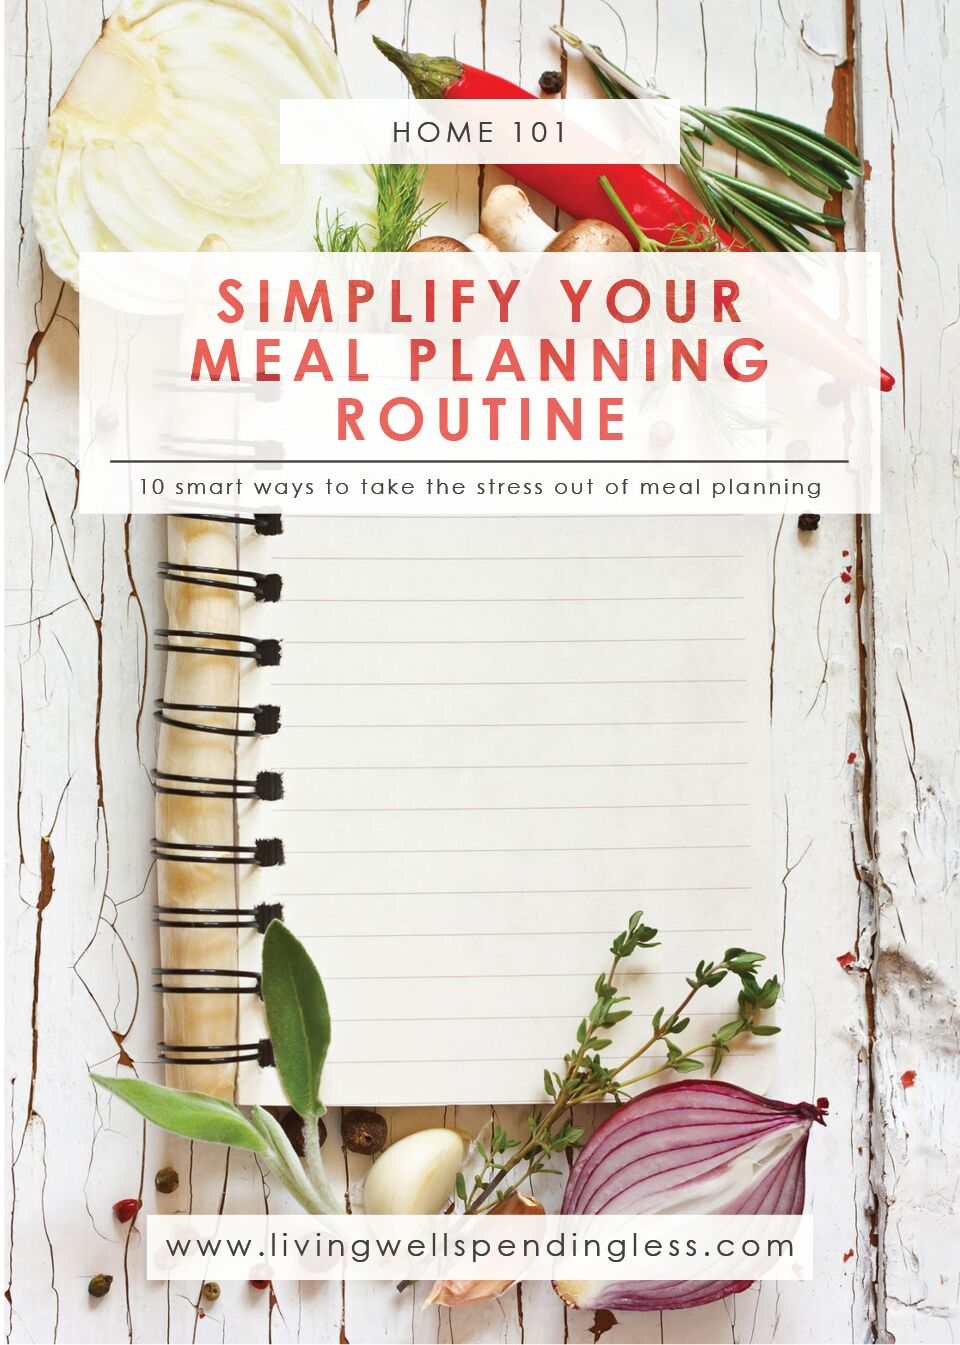 Simple Meal Planning Routine | Meal Planning Guide | Meal Planning Tips | Meal Plan | Menu Planning